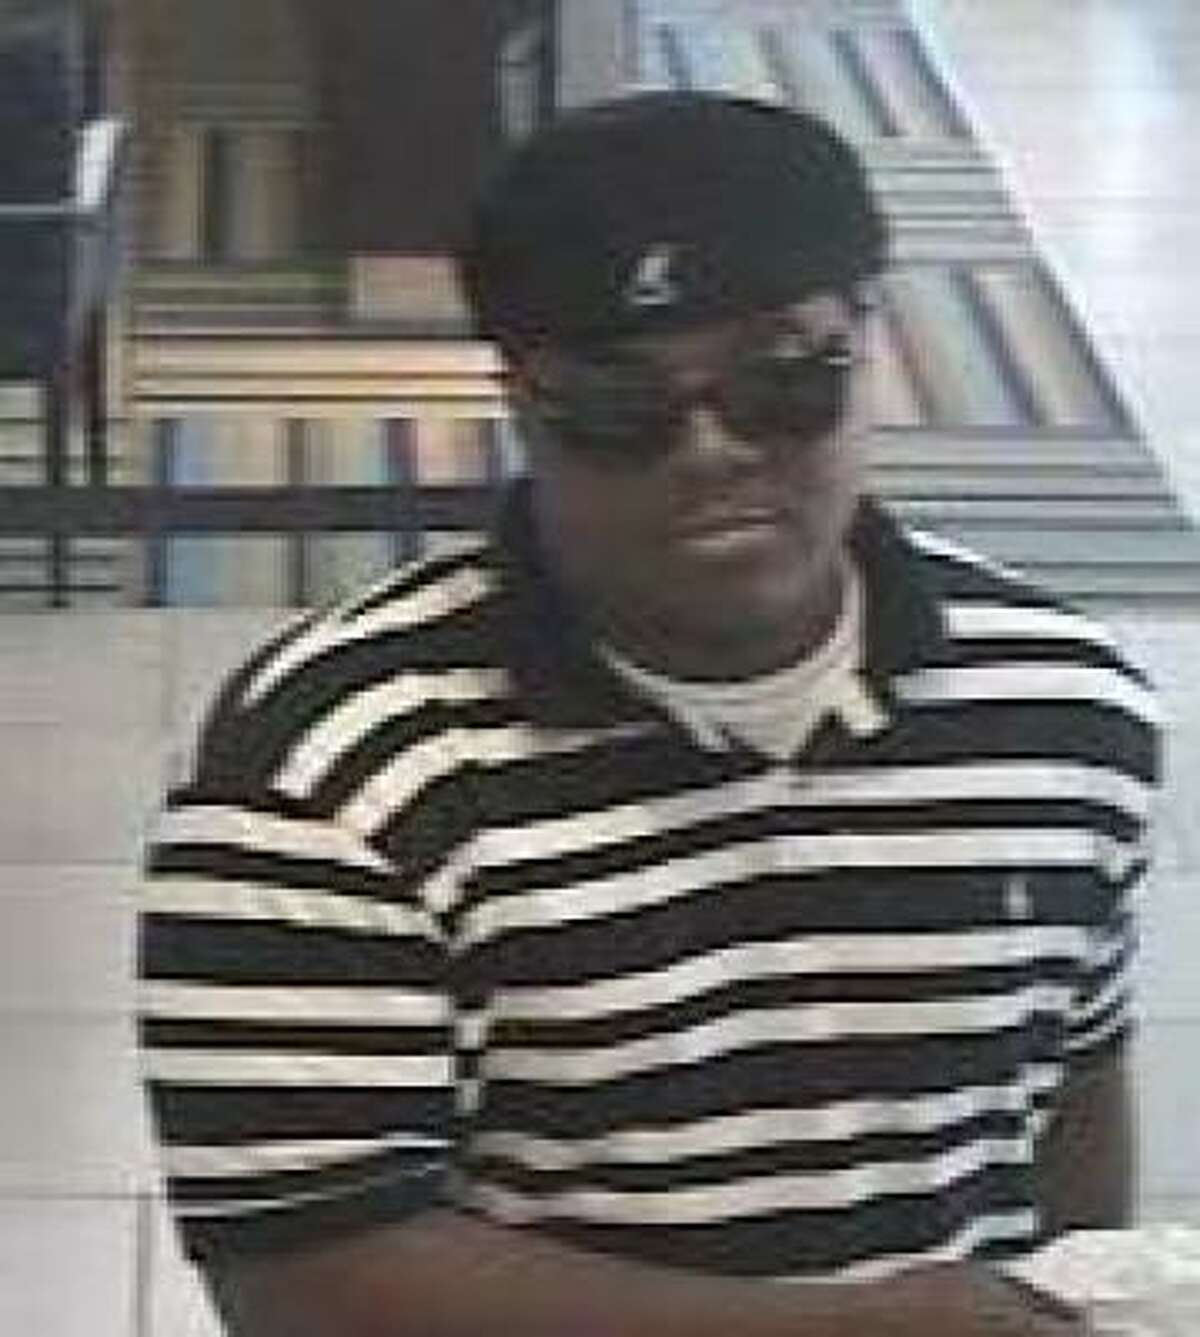 BELLAIRE BOULEVARD, 2009 Authorities say this man flirted with a teller at a Wachovia branch.